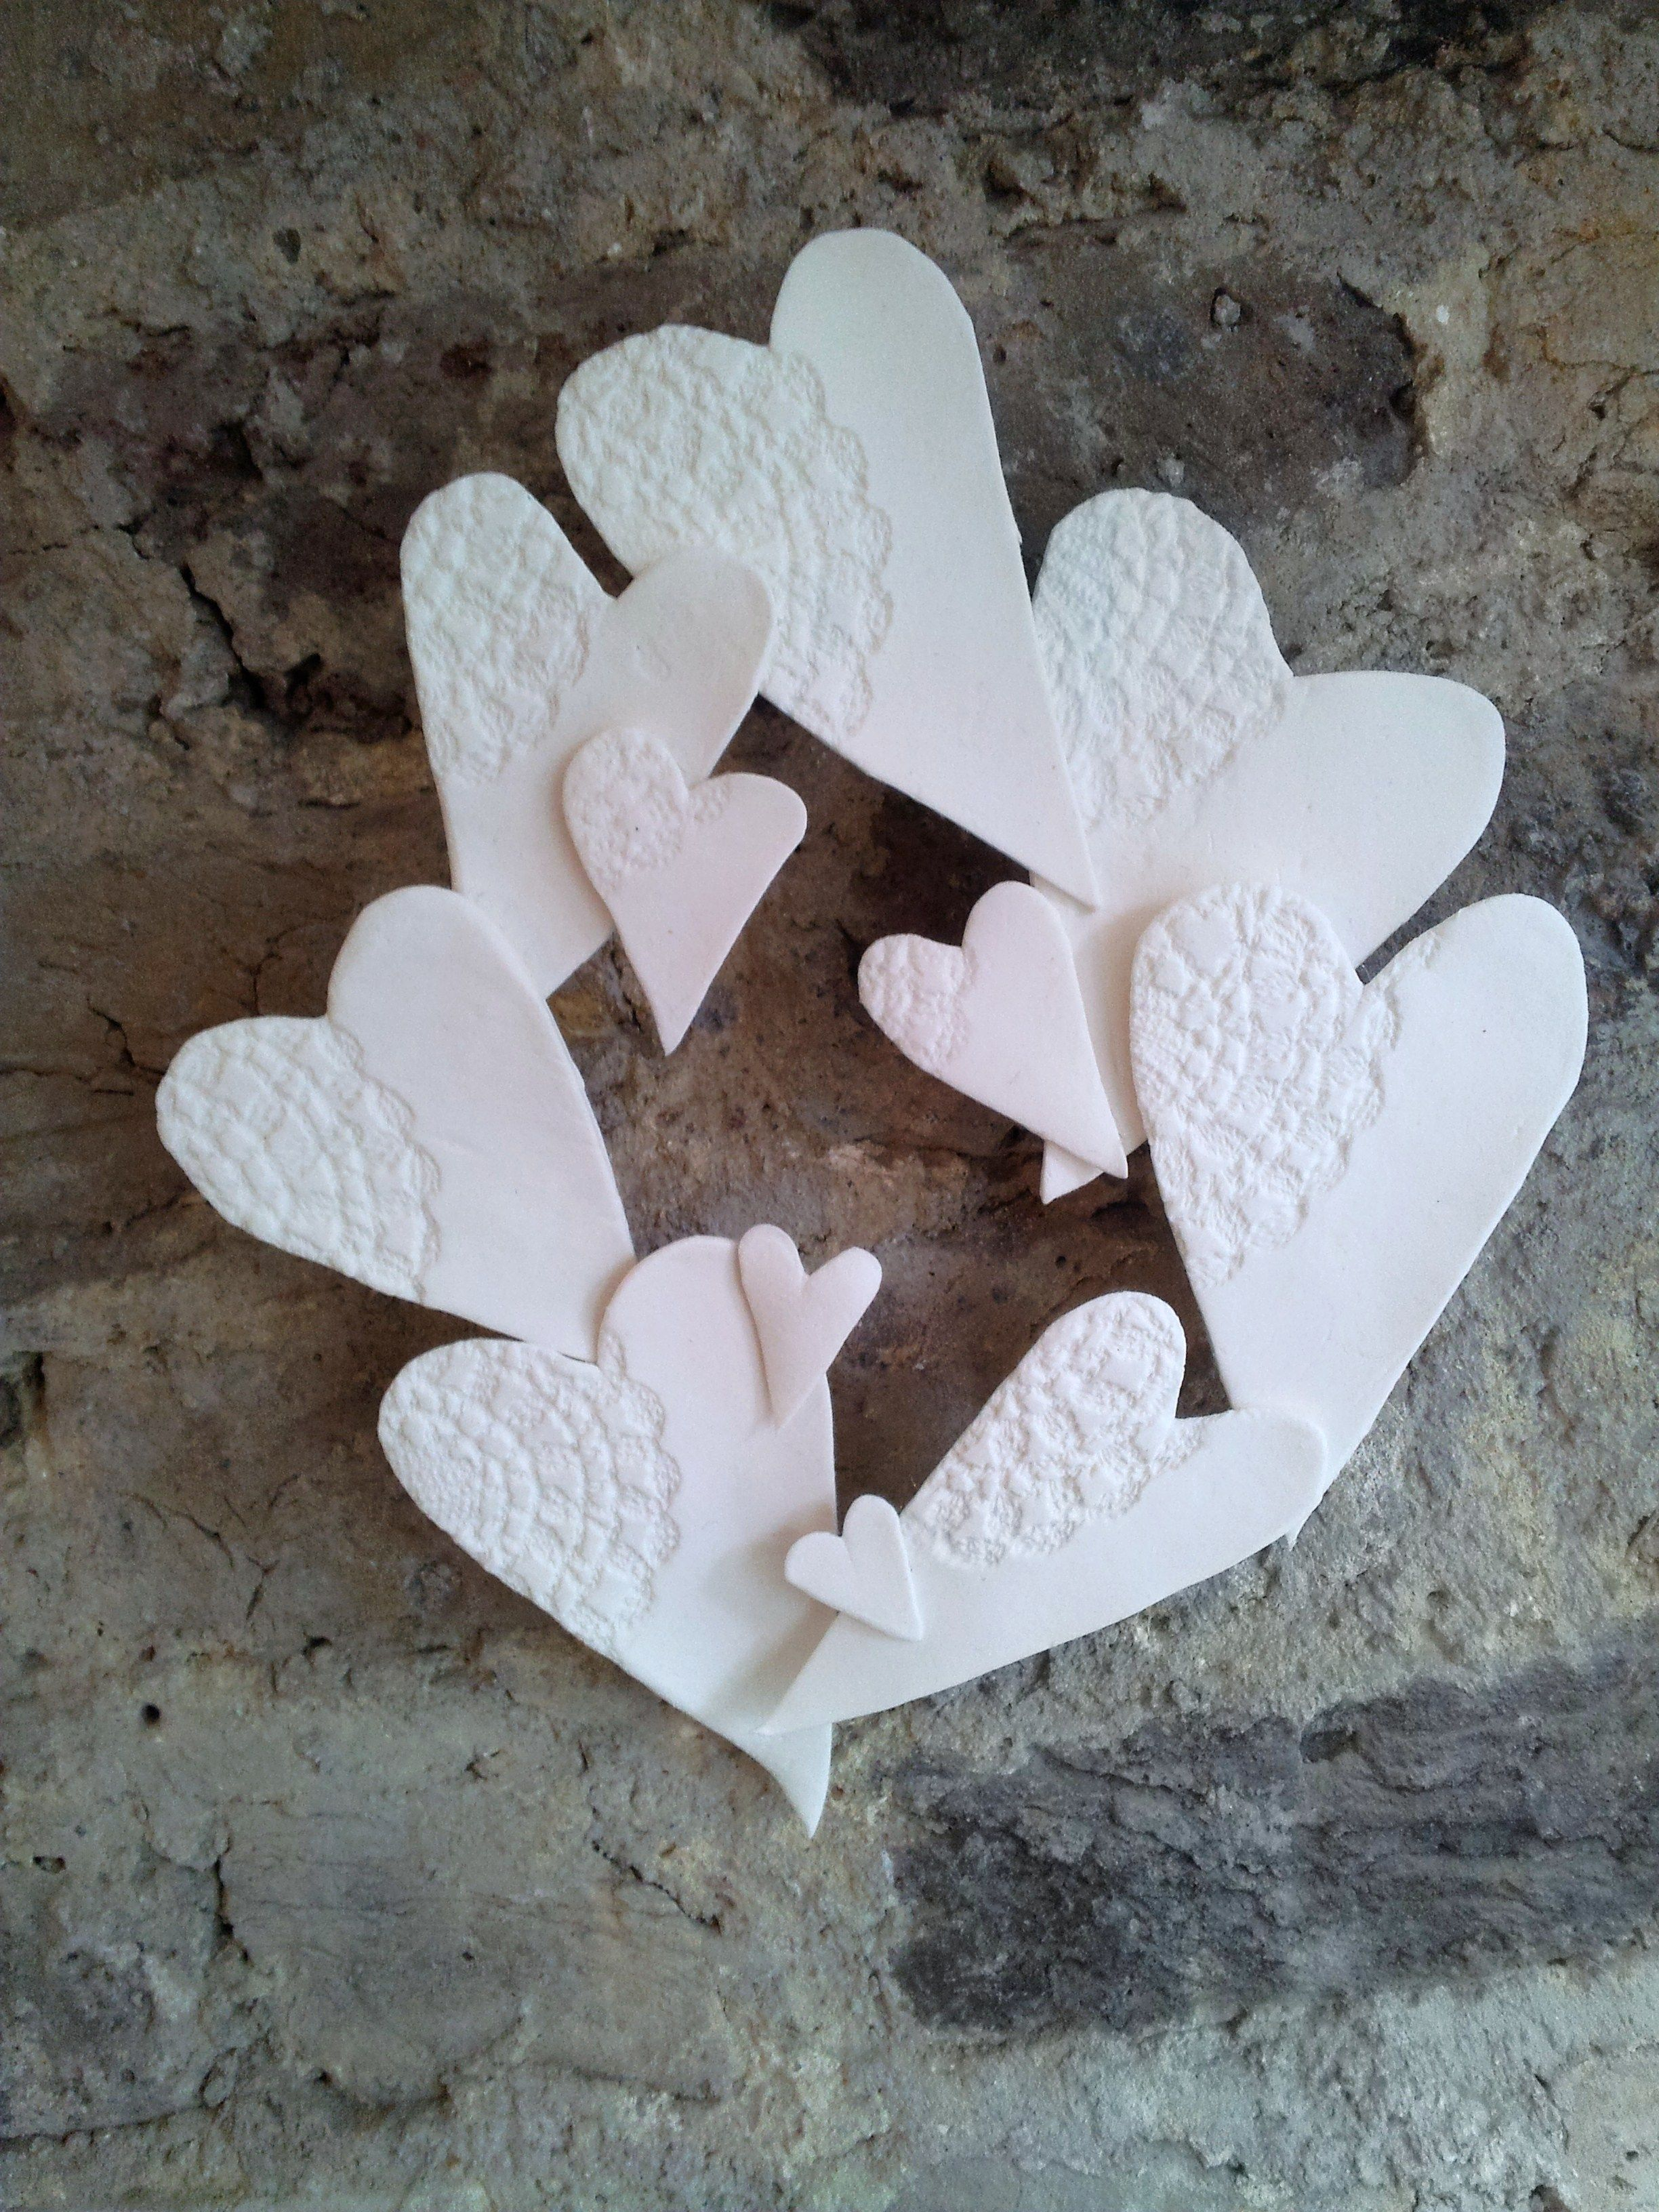 Valentines Decoration With Air Dry Clay A Doily And A Coat Hanger Air Dry Clay Projects Diy Valentines Decorations Clay Crafts